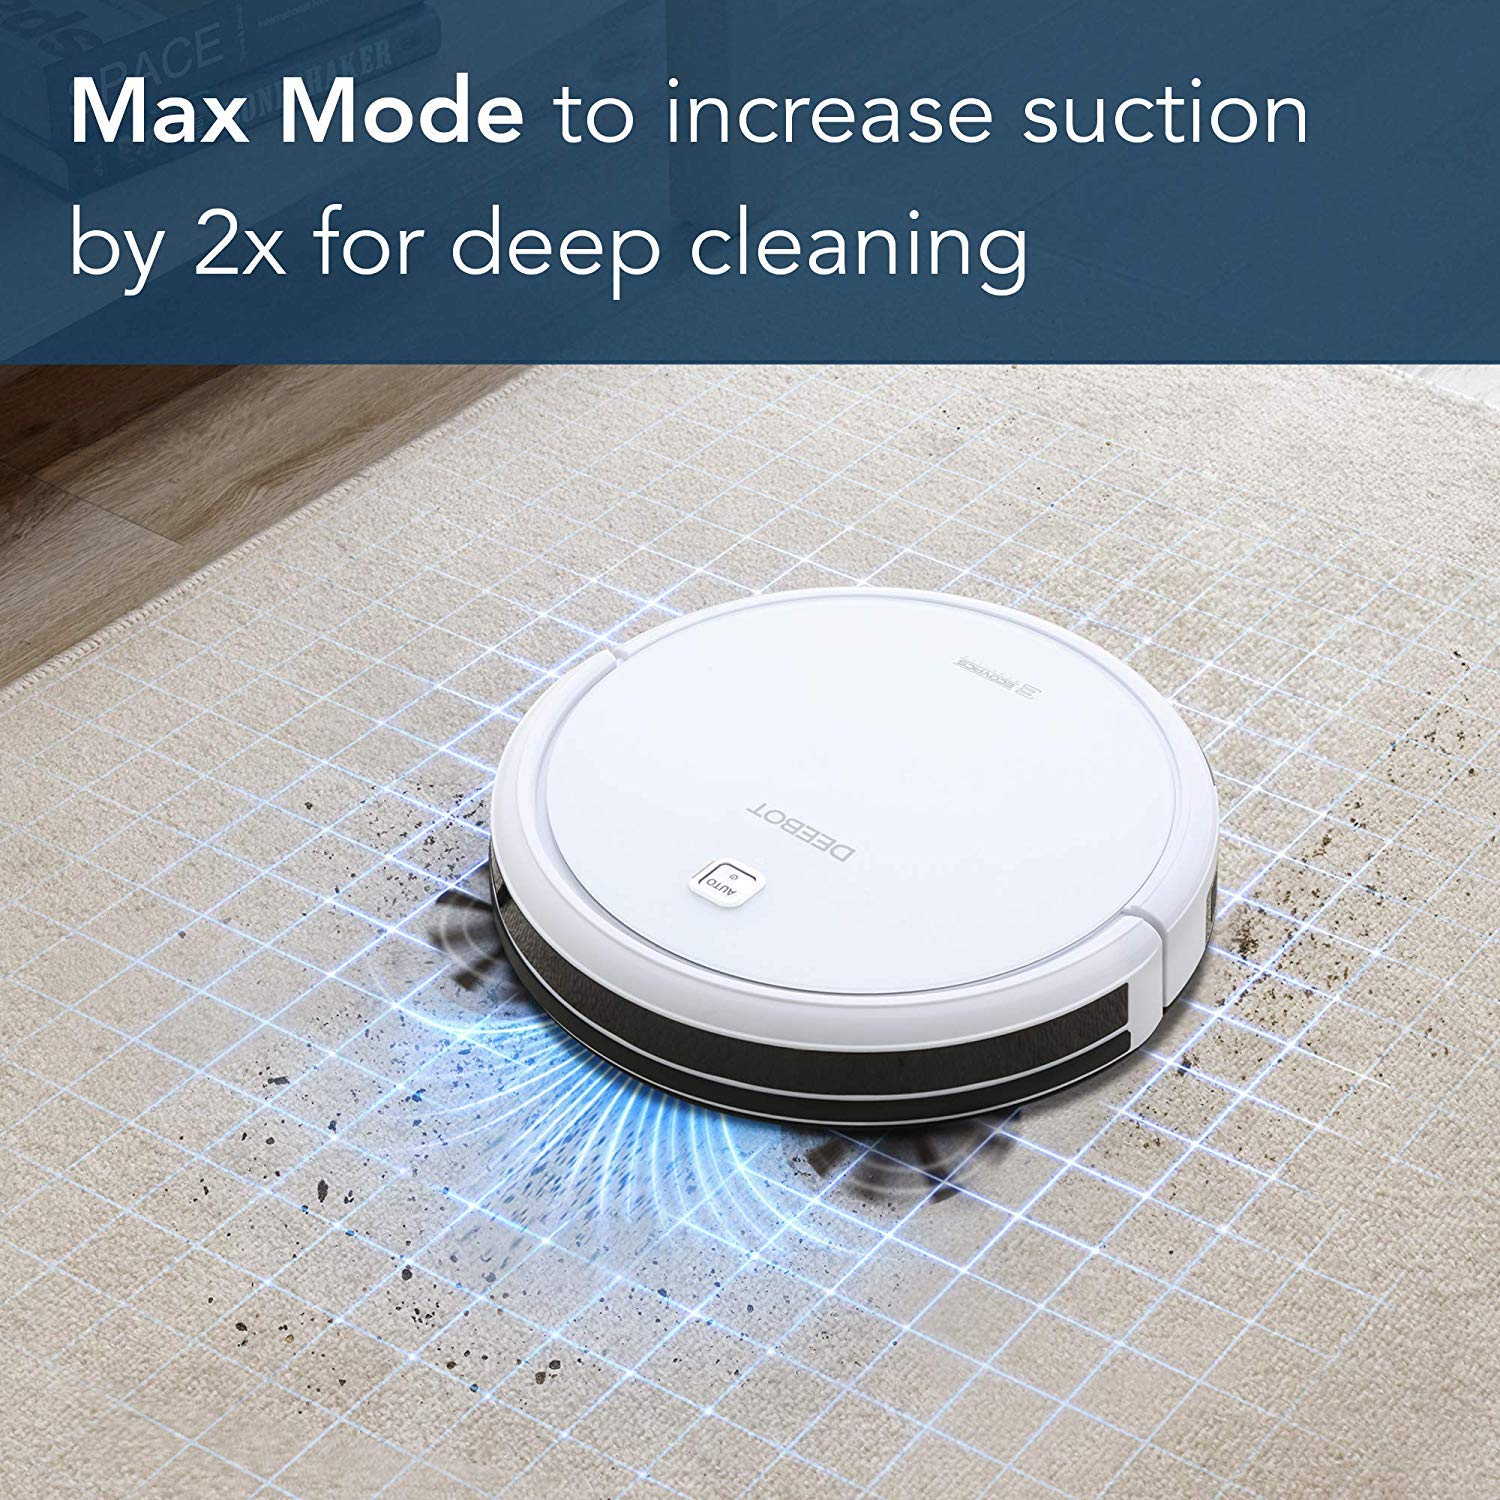 ECOVACS DEEBOT N79W Robot Vacuum Cleaner White with Max Power Suction, Alexa Connectivity, App Controls, Self-Charging, for Hard Surface Floors Thin Carpets Renewed